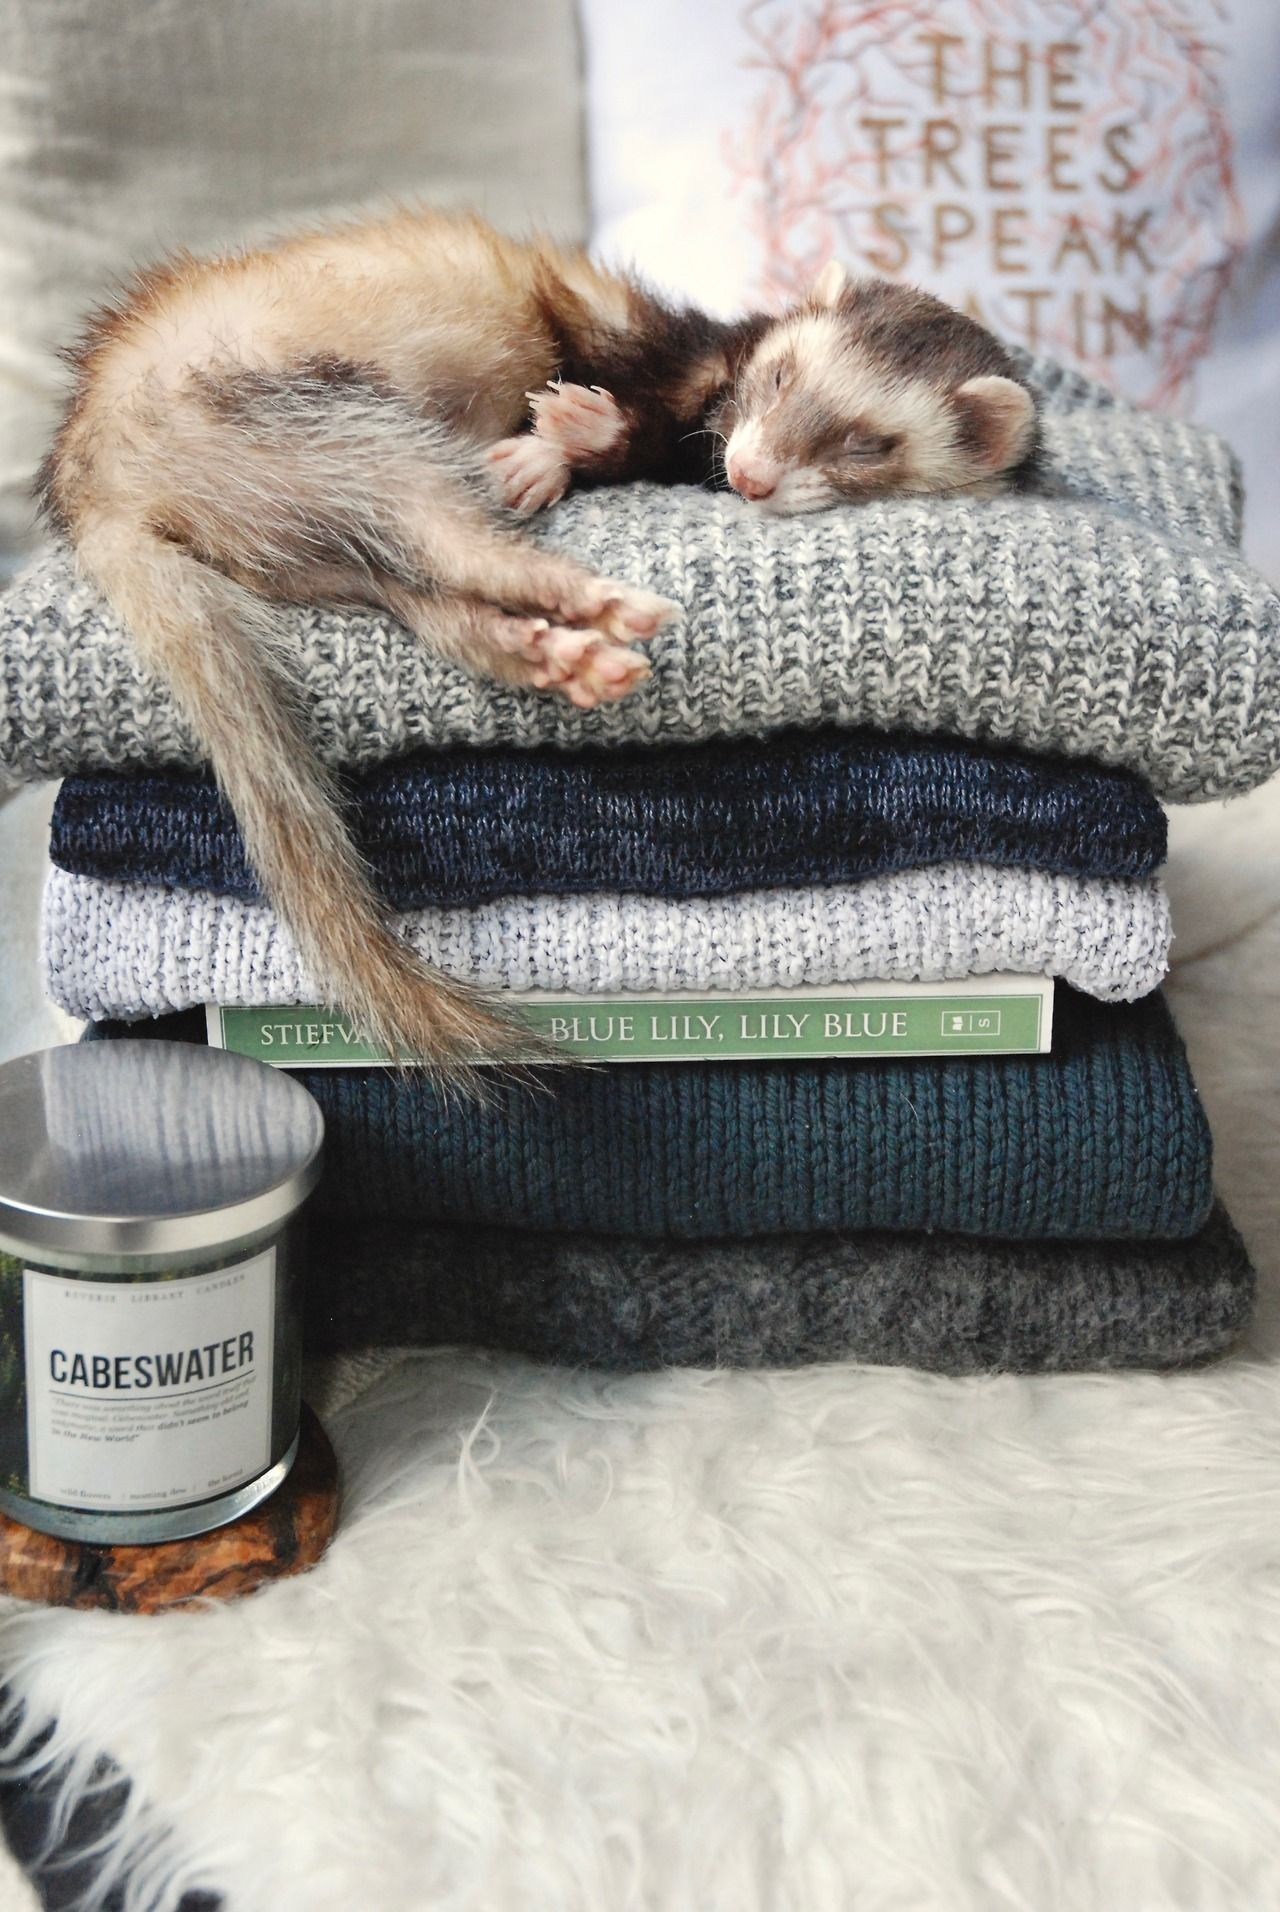 Pin By Mad Hatter On Cute Animals Ferret Pet Ferret Funny Ferrets